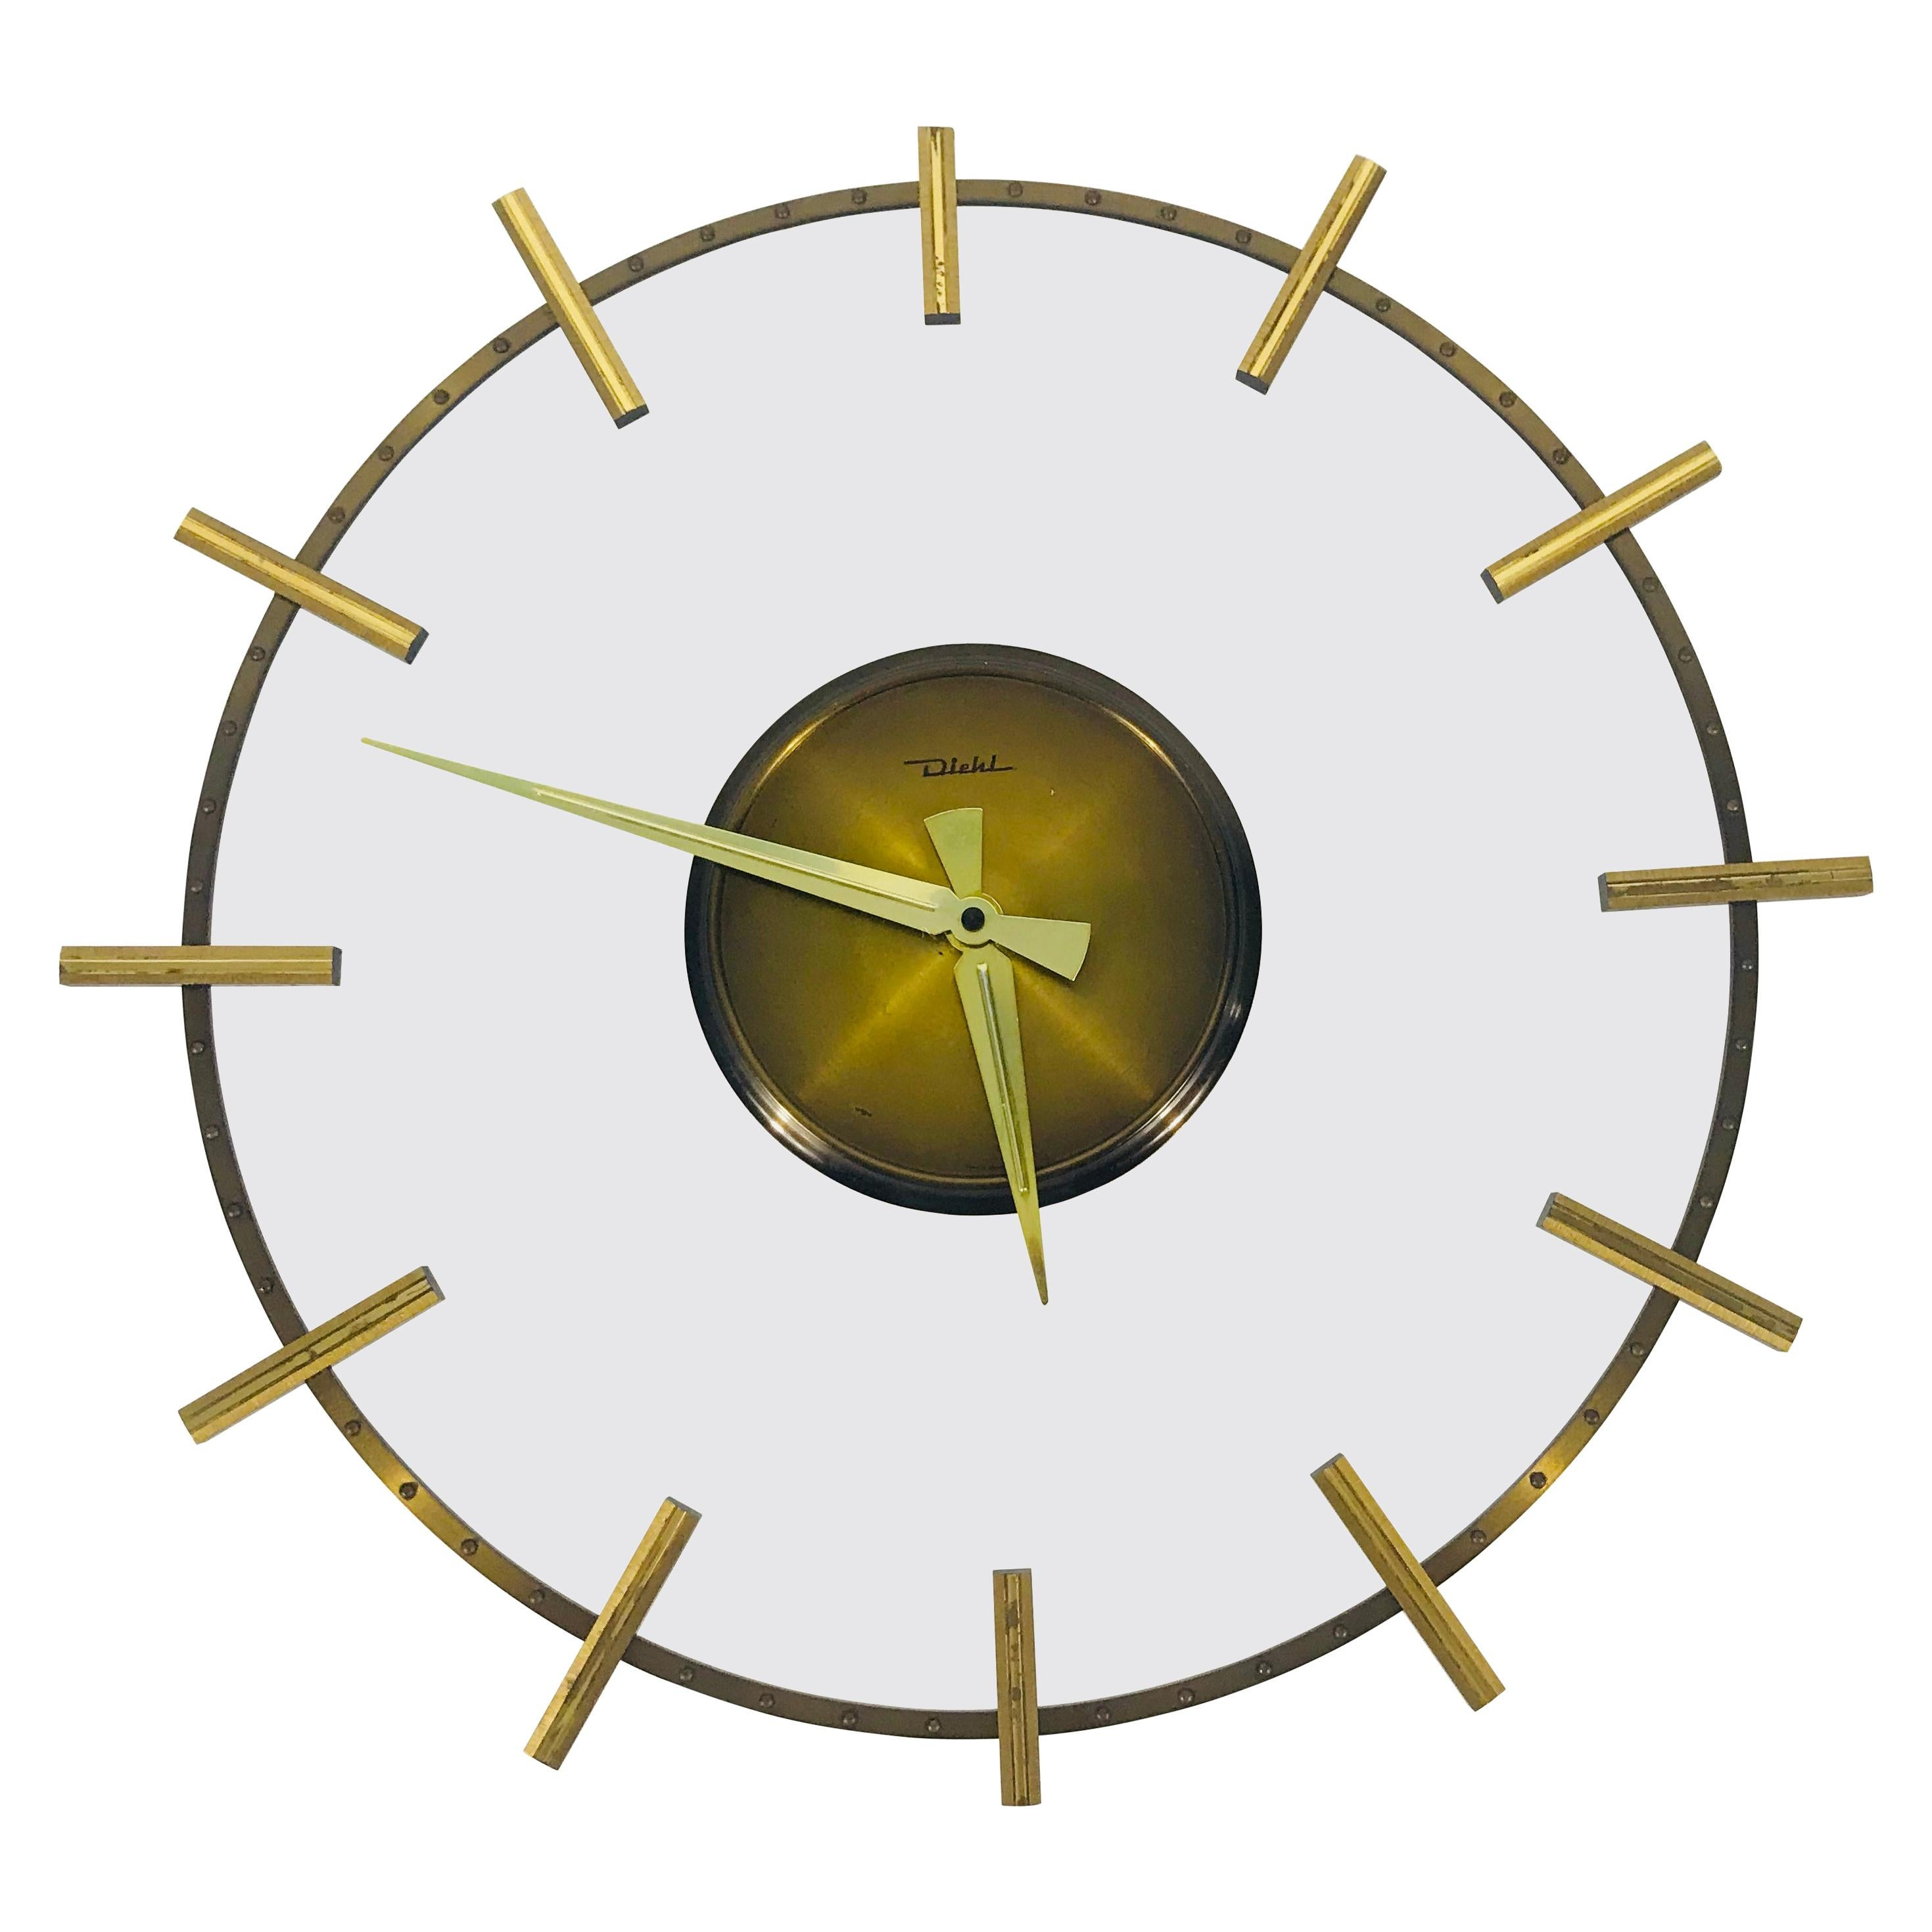 Mid-Century Modern Brass and Acrylic Wall Clock by Diehl, Germany, 1960s